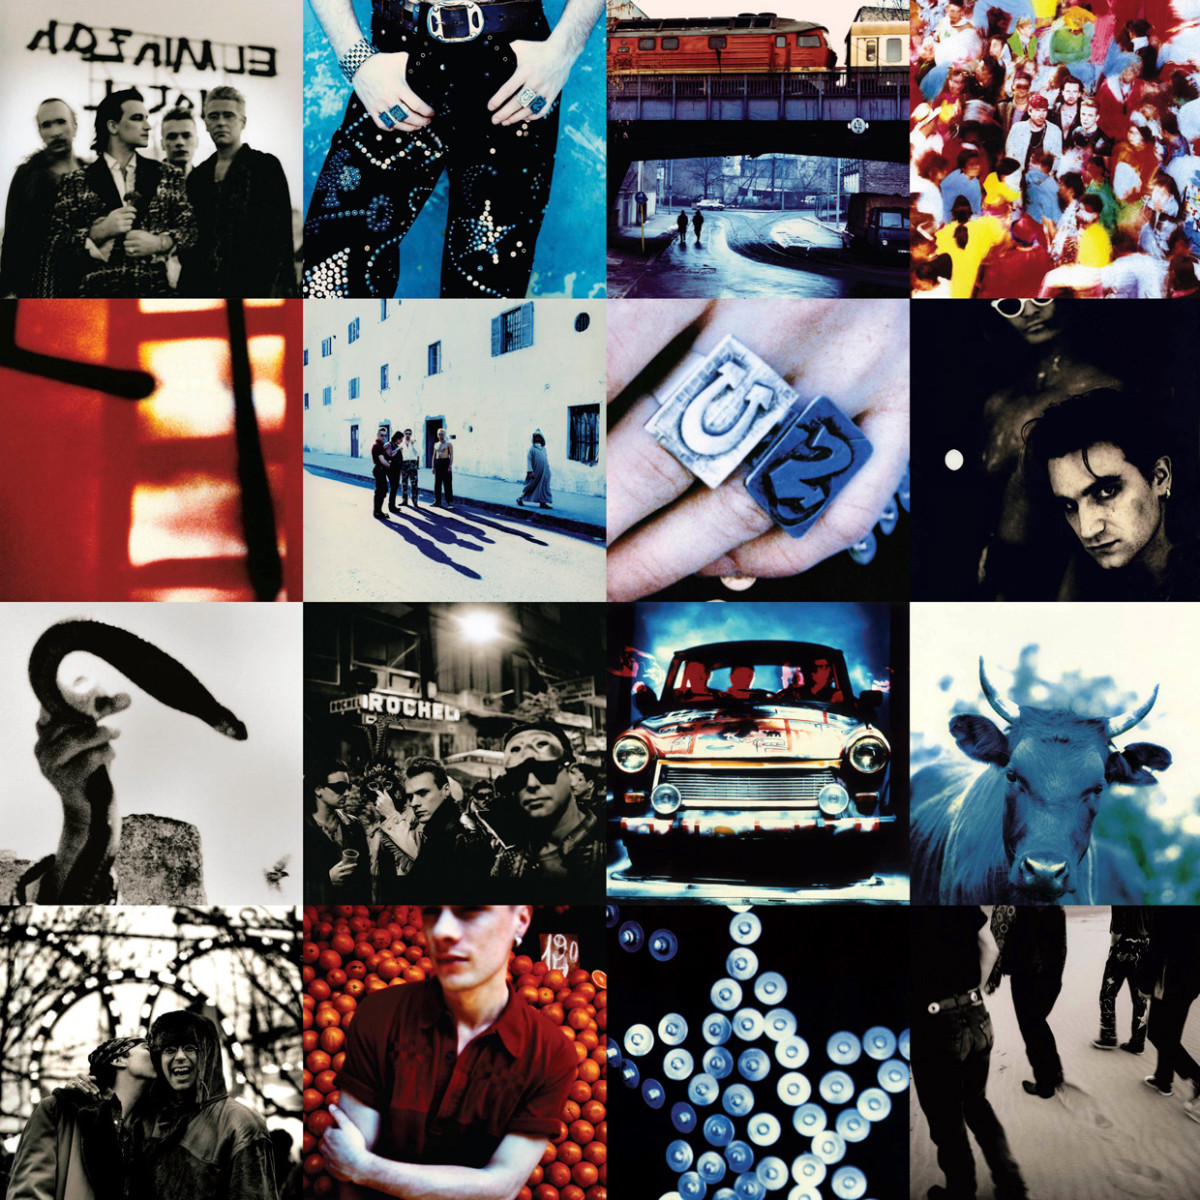 U2 Achtung Baby review